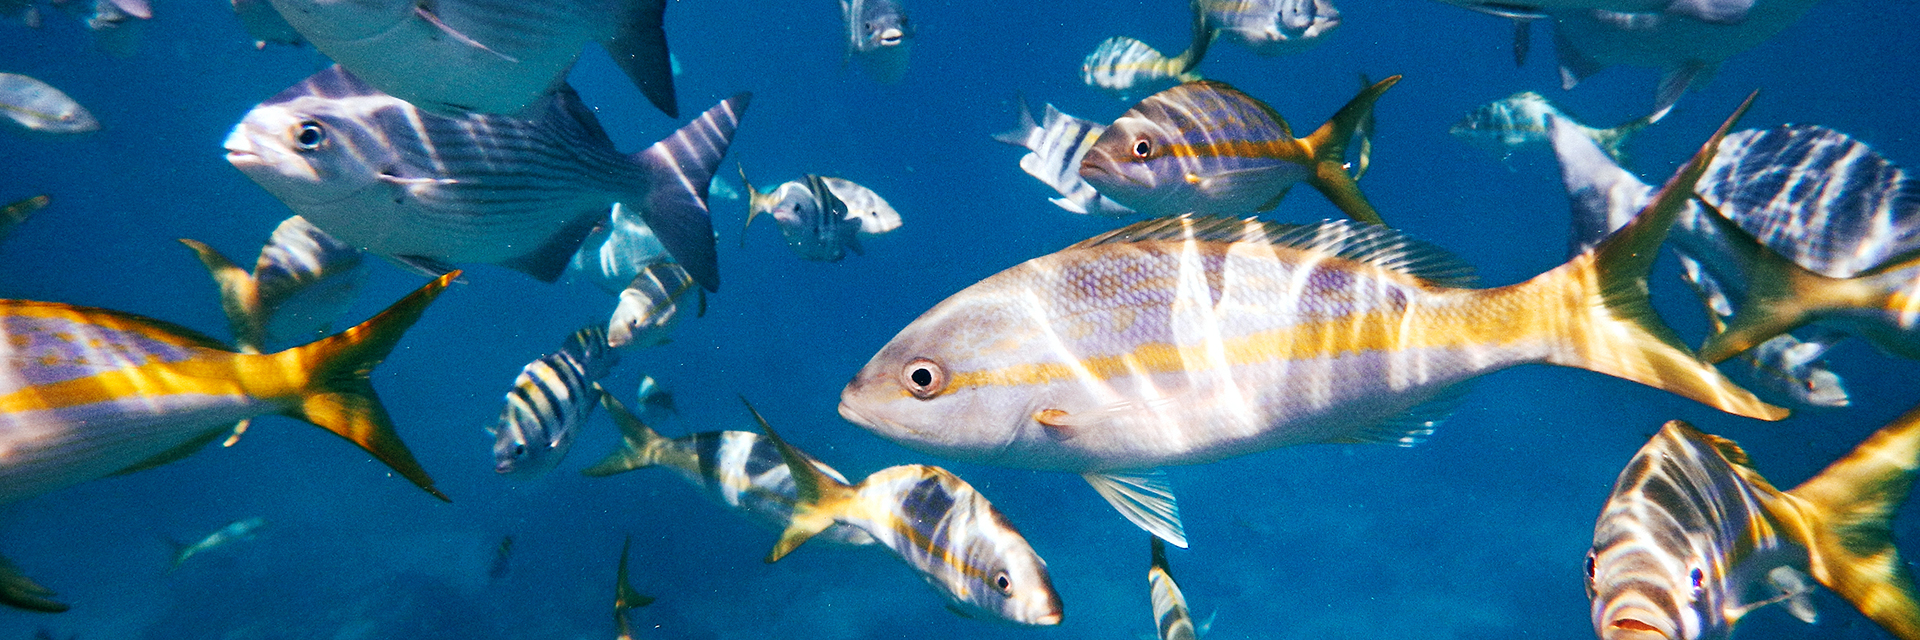 School-of-Fish-Yellow-Tipped-Fins-Swimming-Underwater-tropical-Gulf-of-Mexico-Atlantic-Ocean-water-off-island-marine-blue-coral-reef-sm